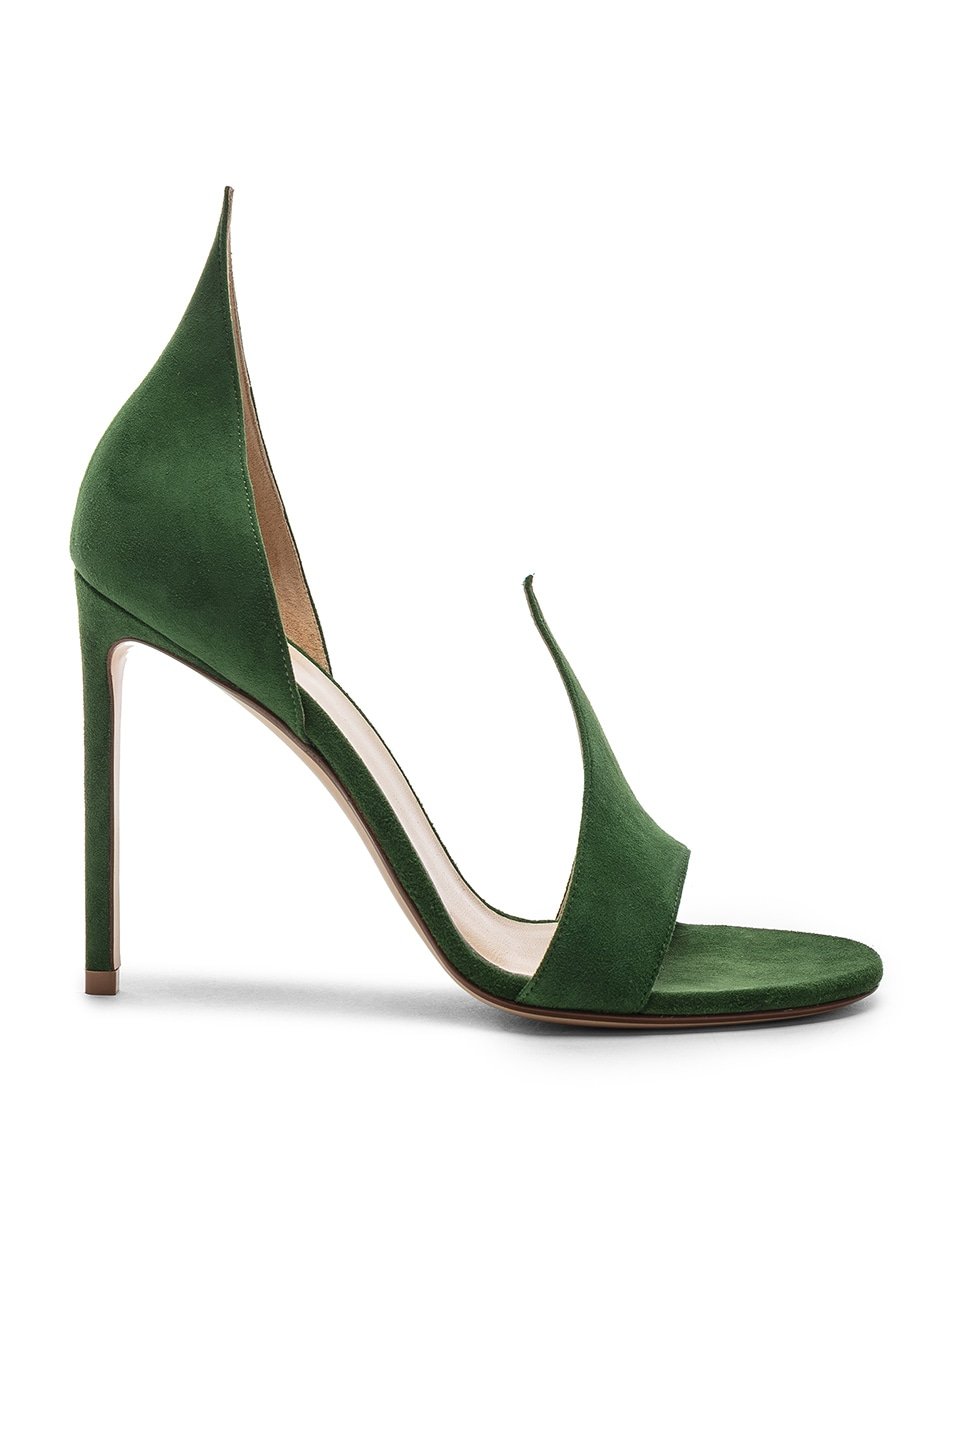 Image 1 of FRANCESCO RUSSO Flame Heels in Emerald Green